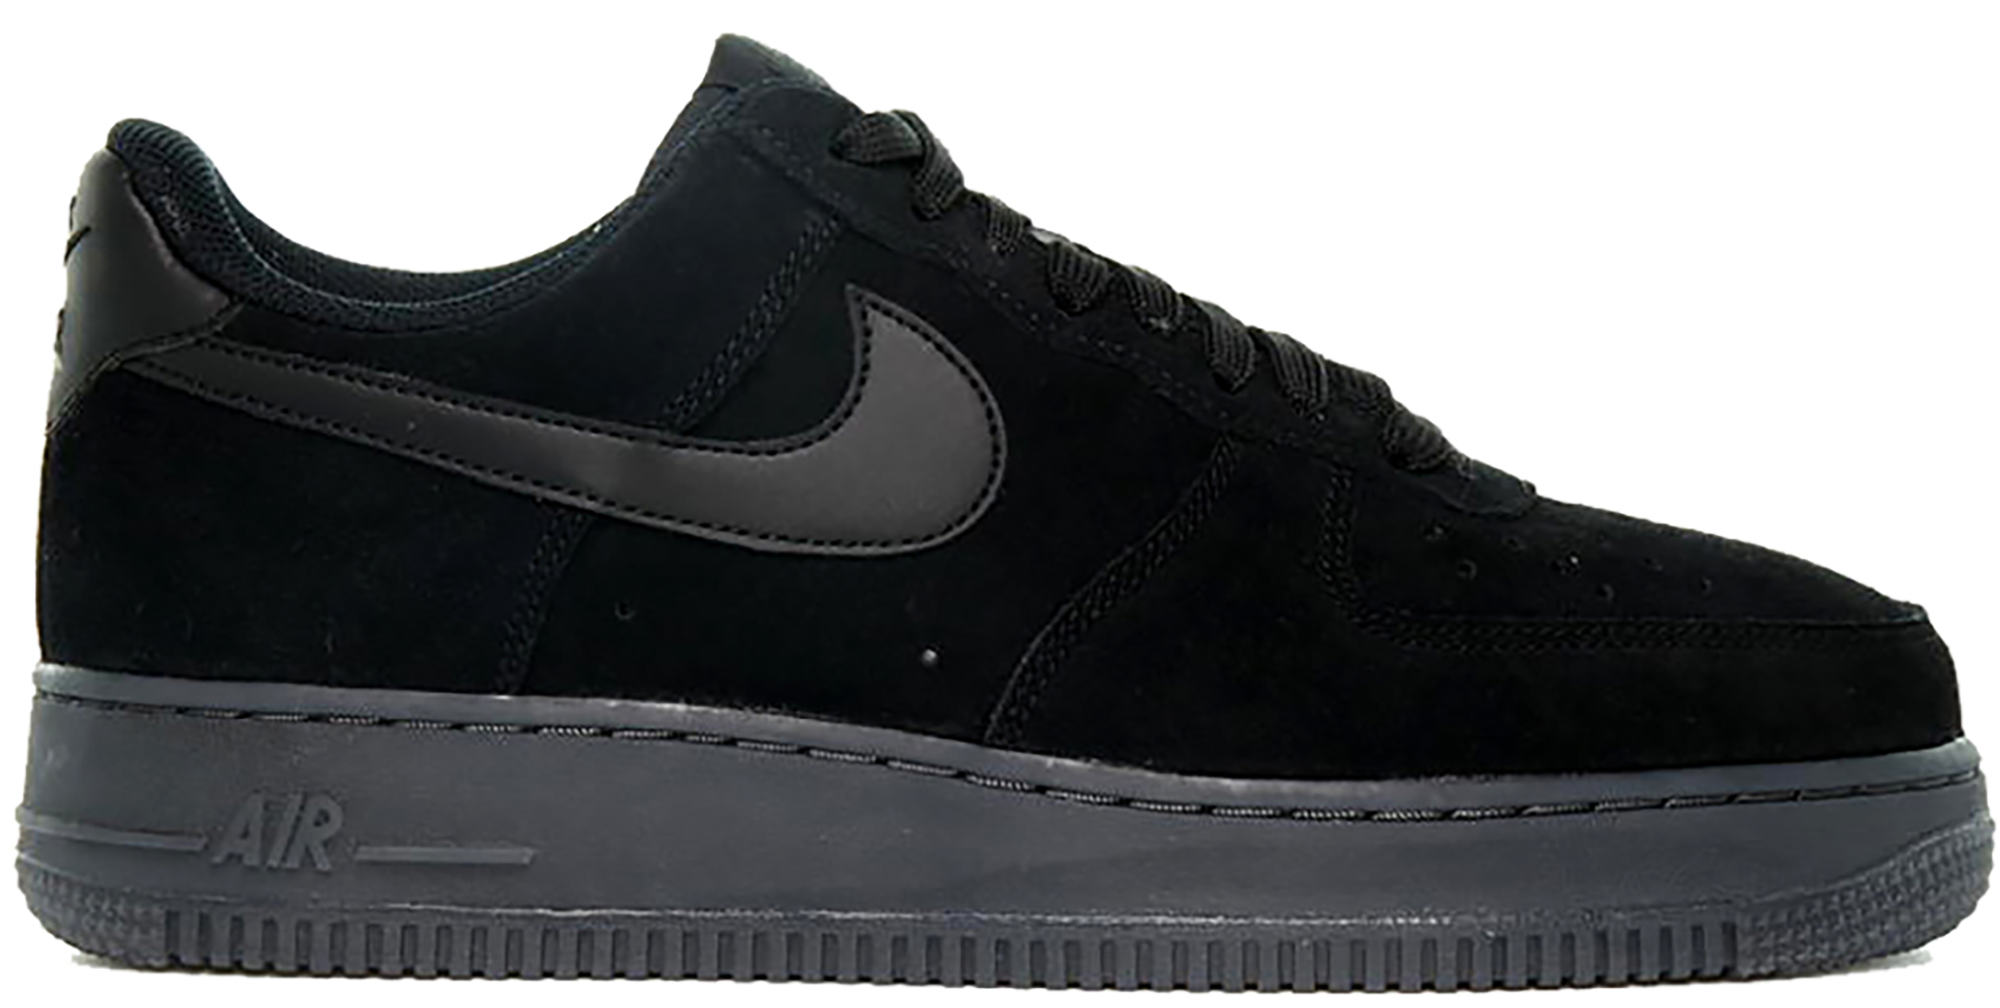 Nike Air Force 1 Low Black Anthracite